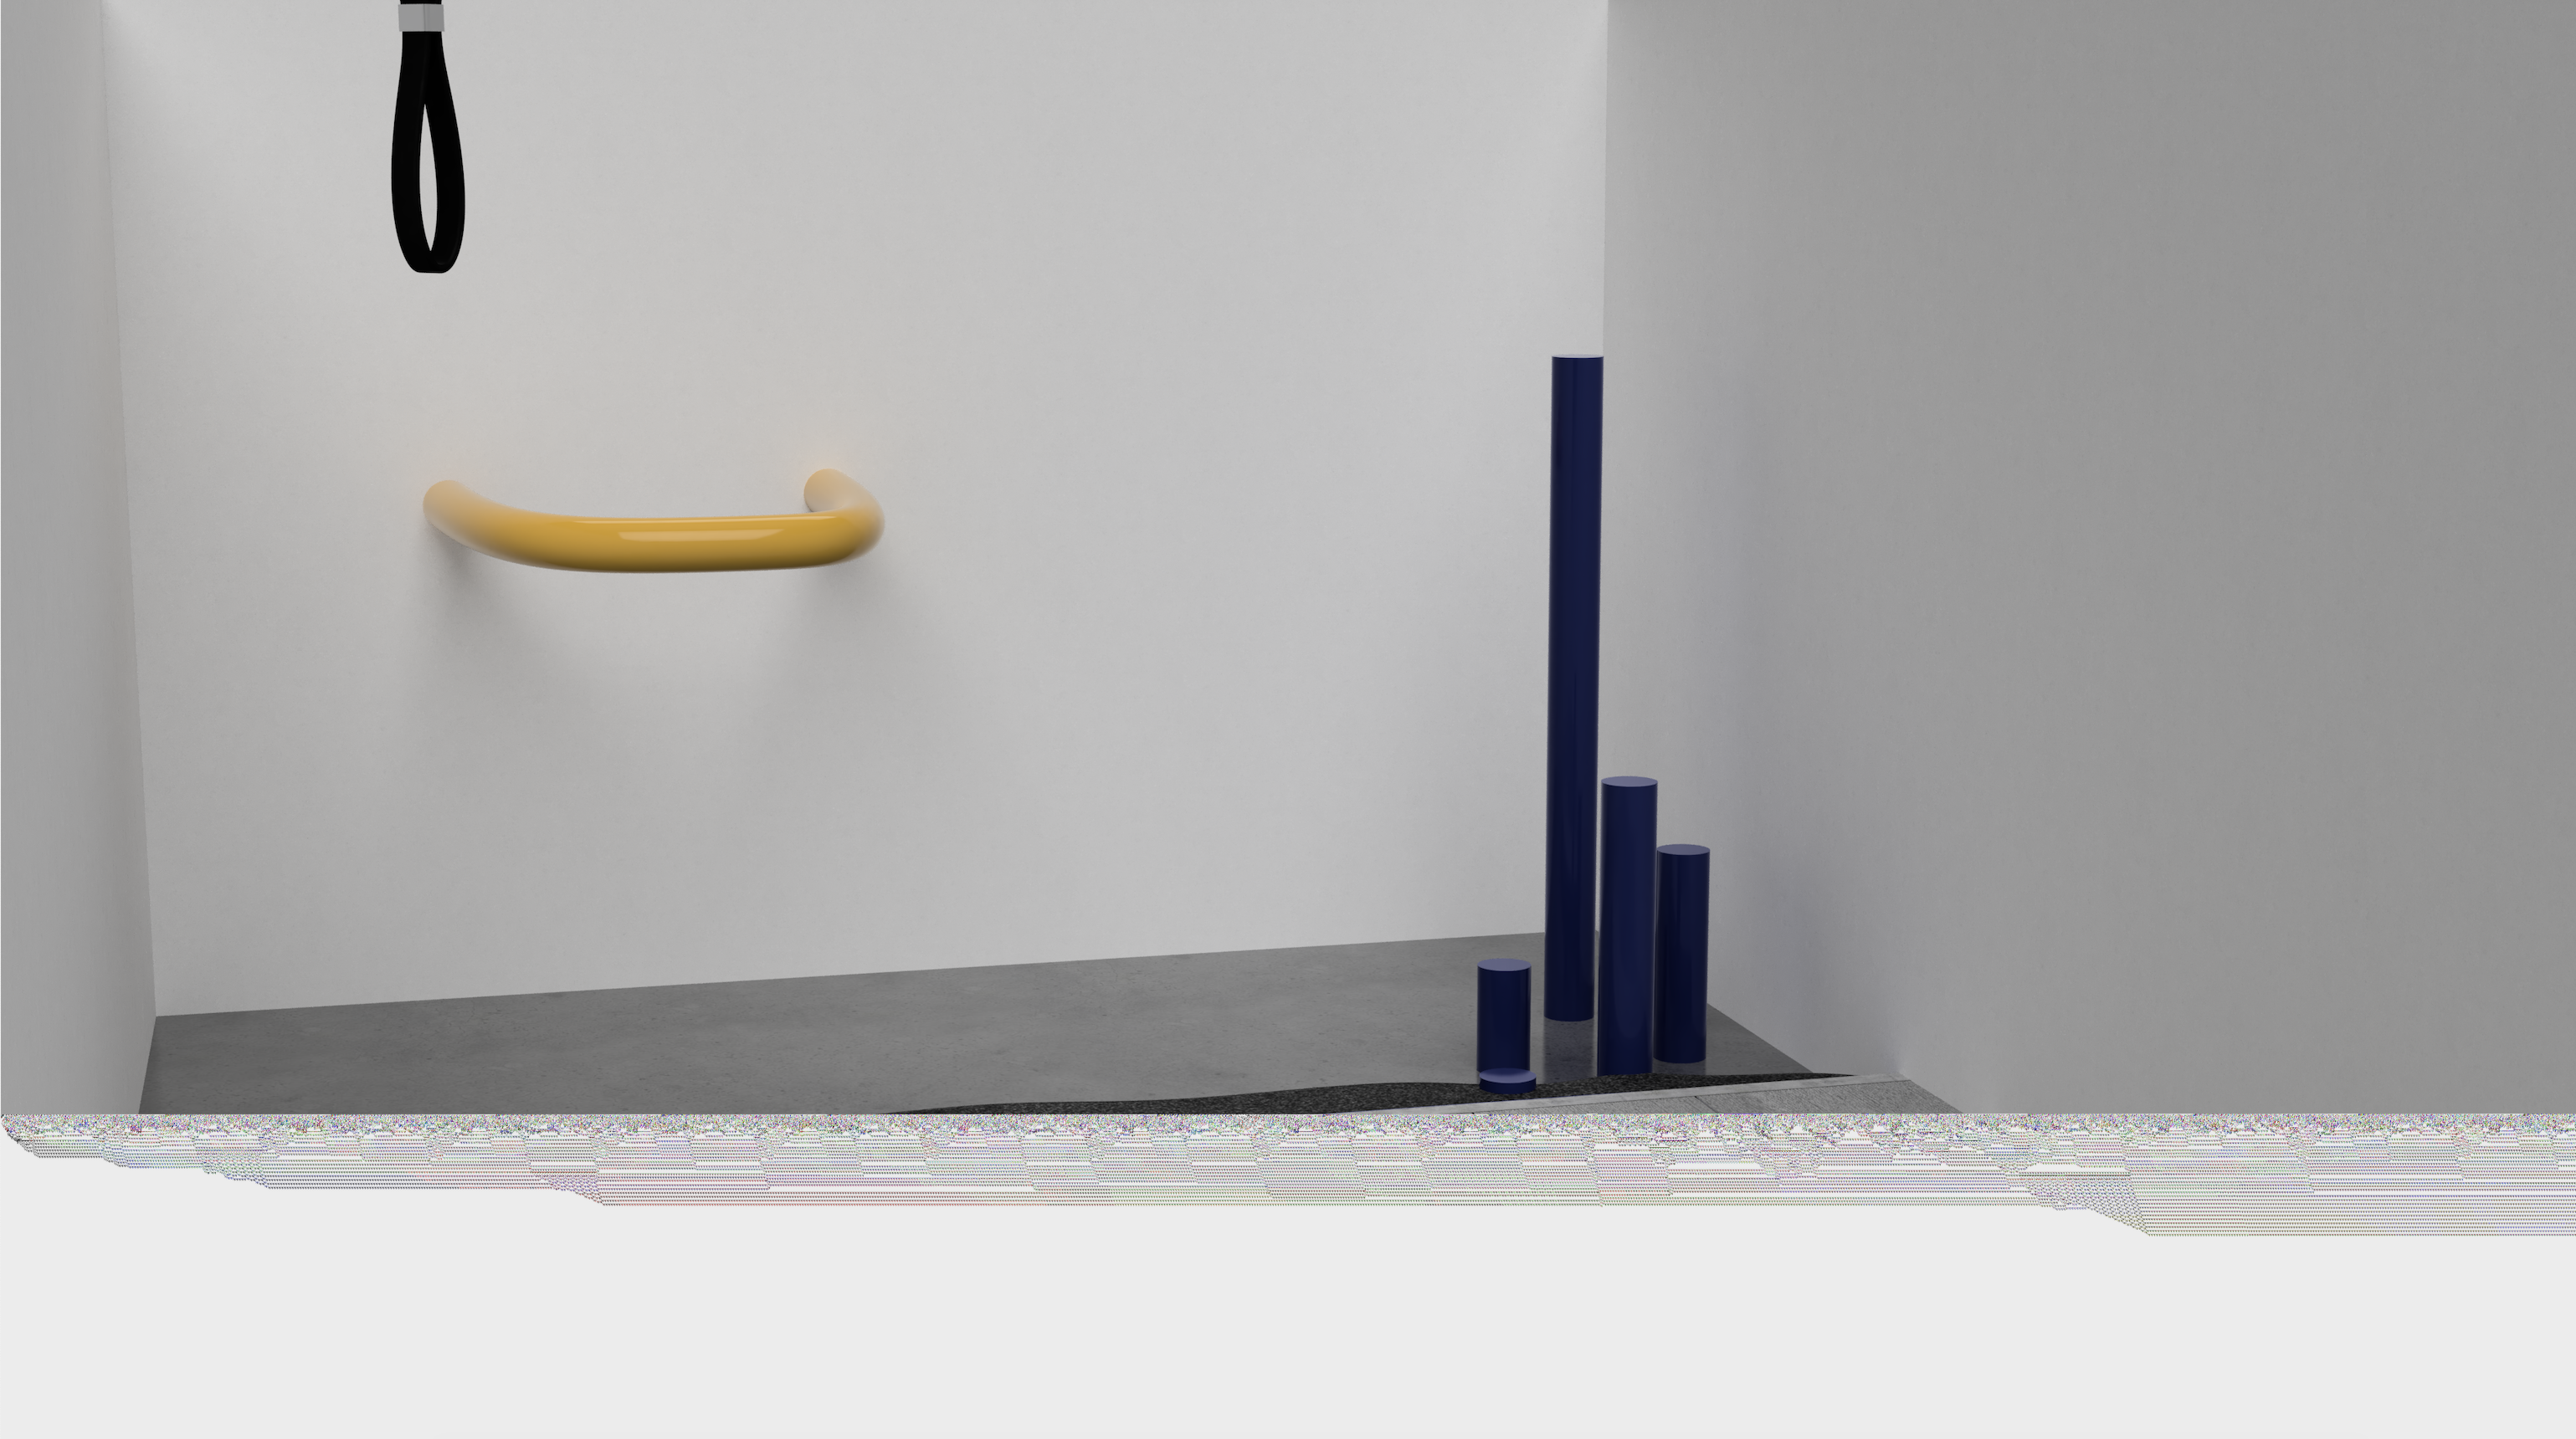 Callum Agnew, Dysfunctional Infrastructure (maquette 1), 2019, 3D rendering, courtesy of the artist.